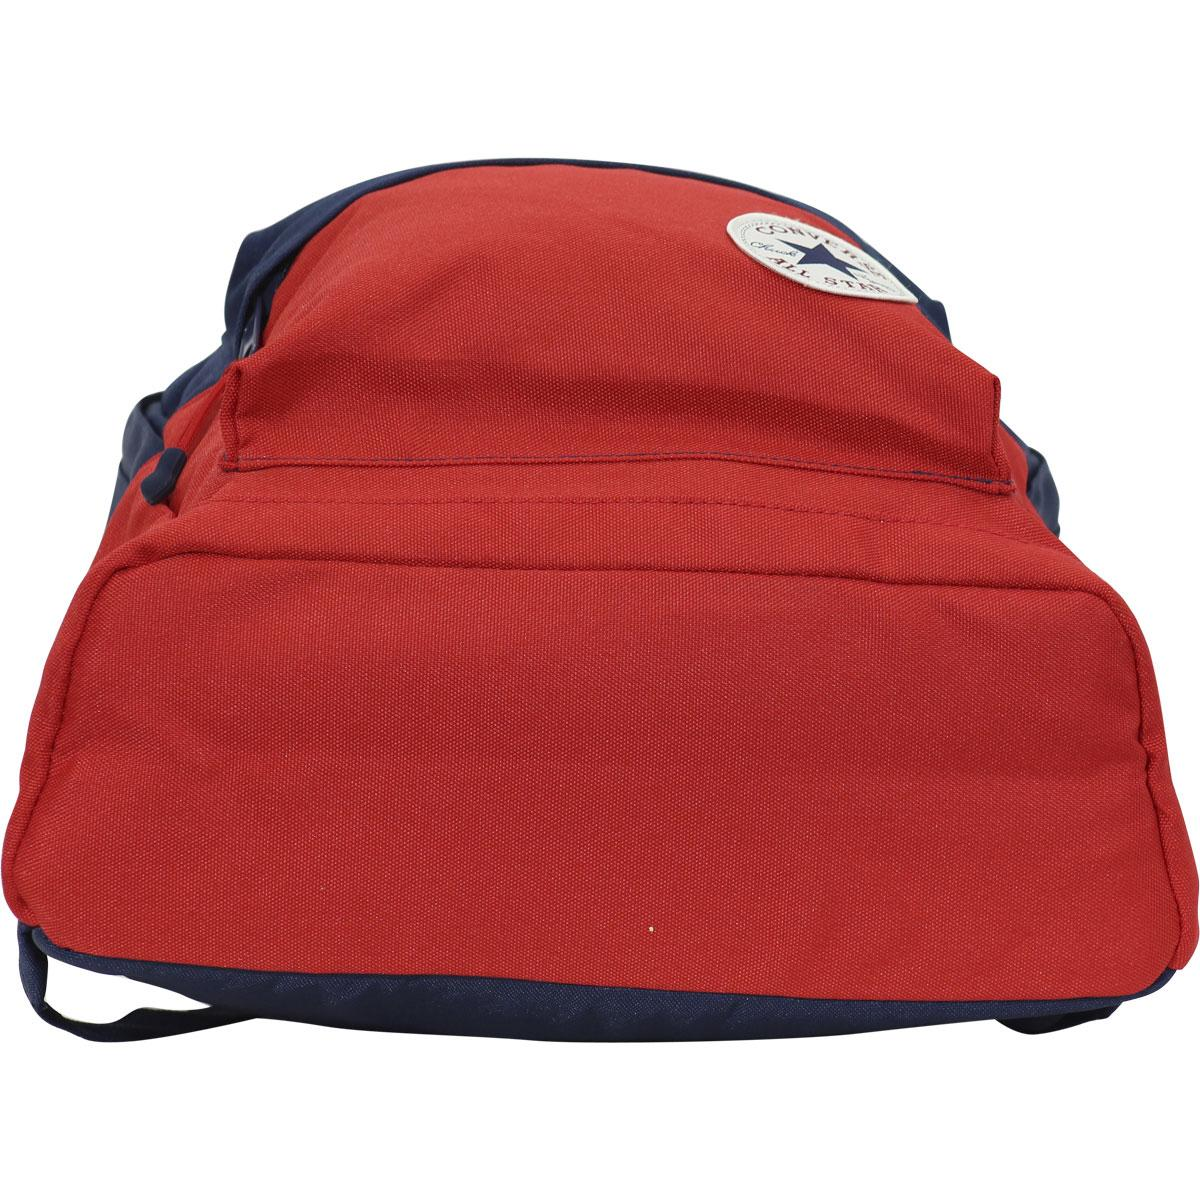 ee954bfb04 Converse Little Big Boy s All-Star Rucksack Backpack